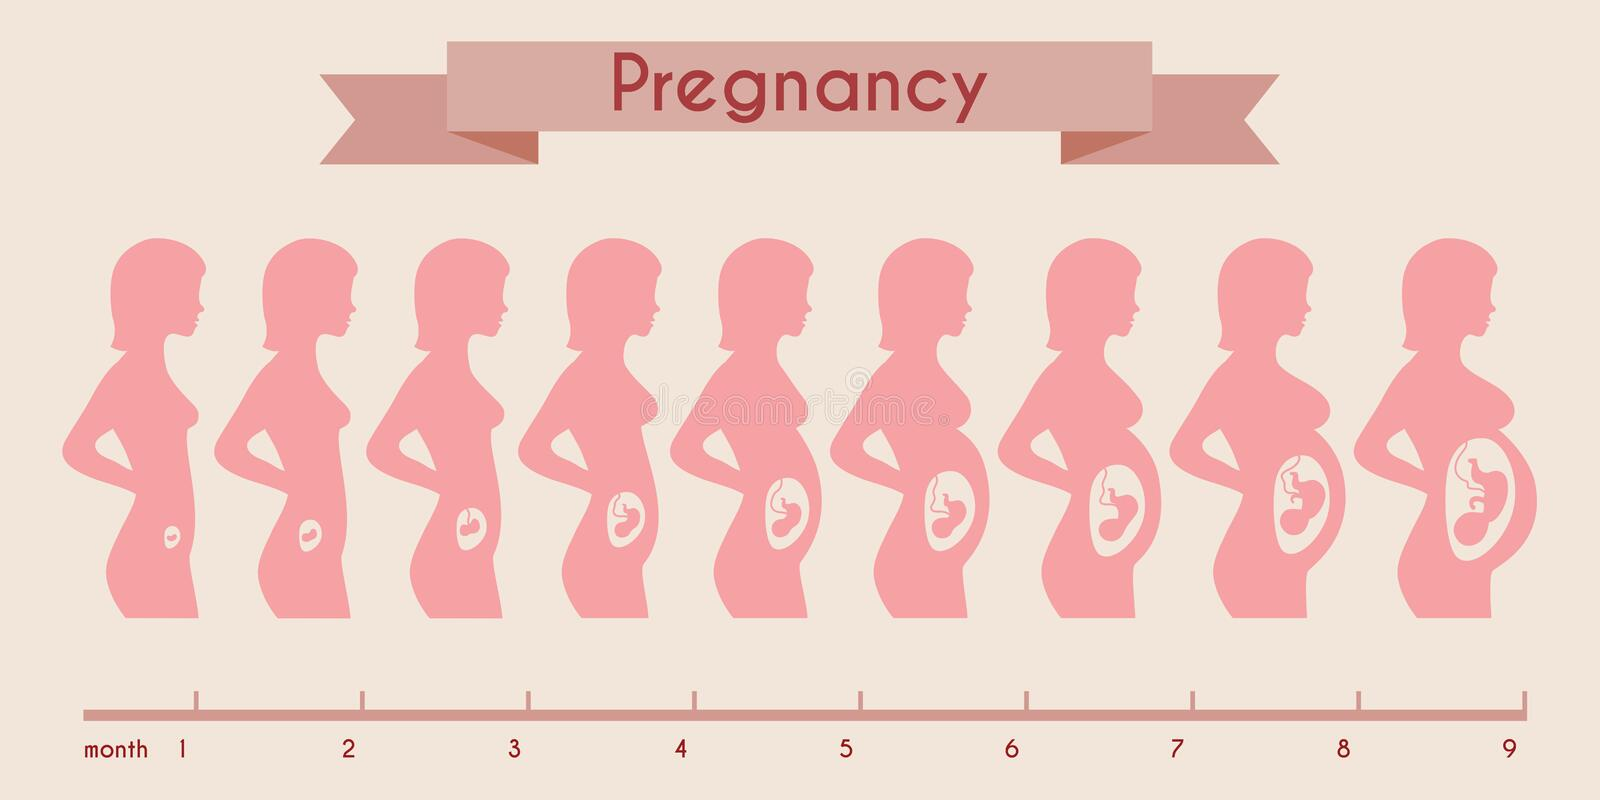 Growth of human fetus with female silhouette in vector illustration